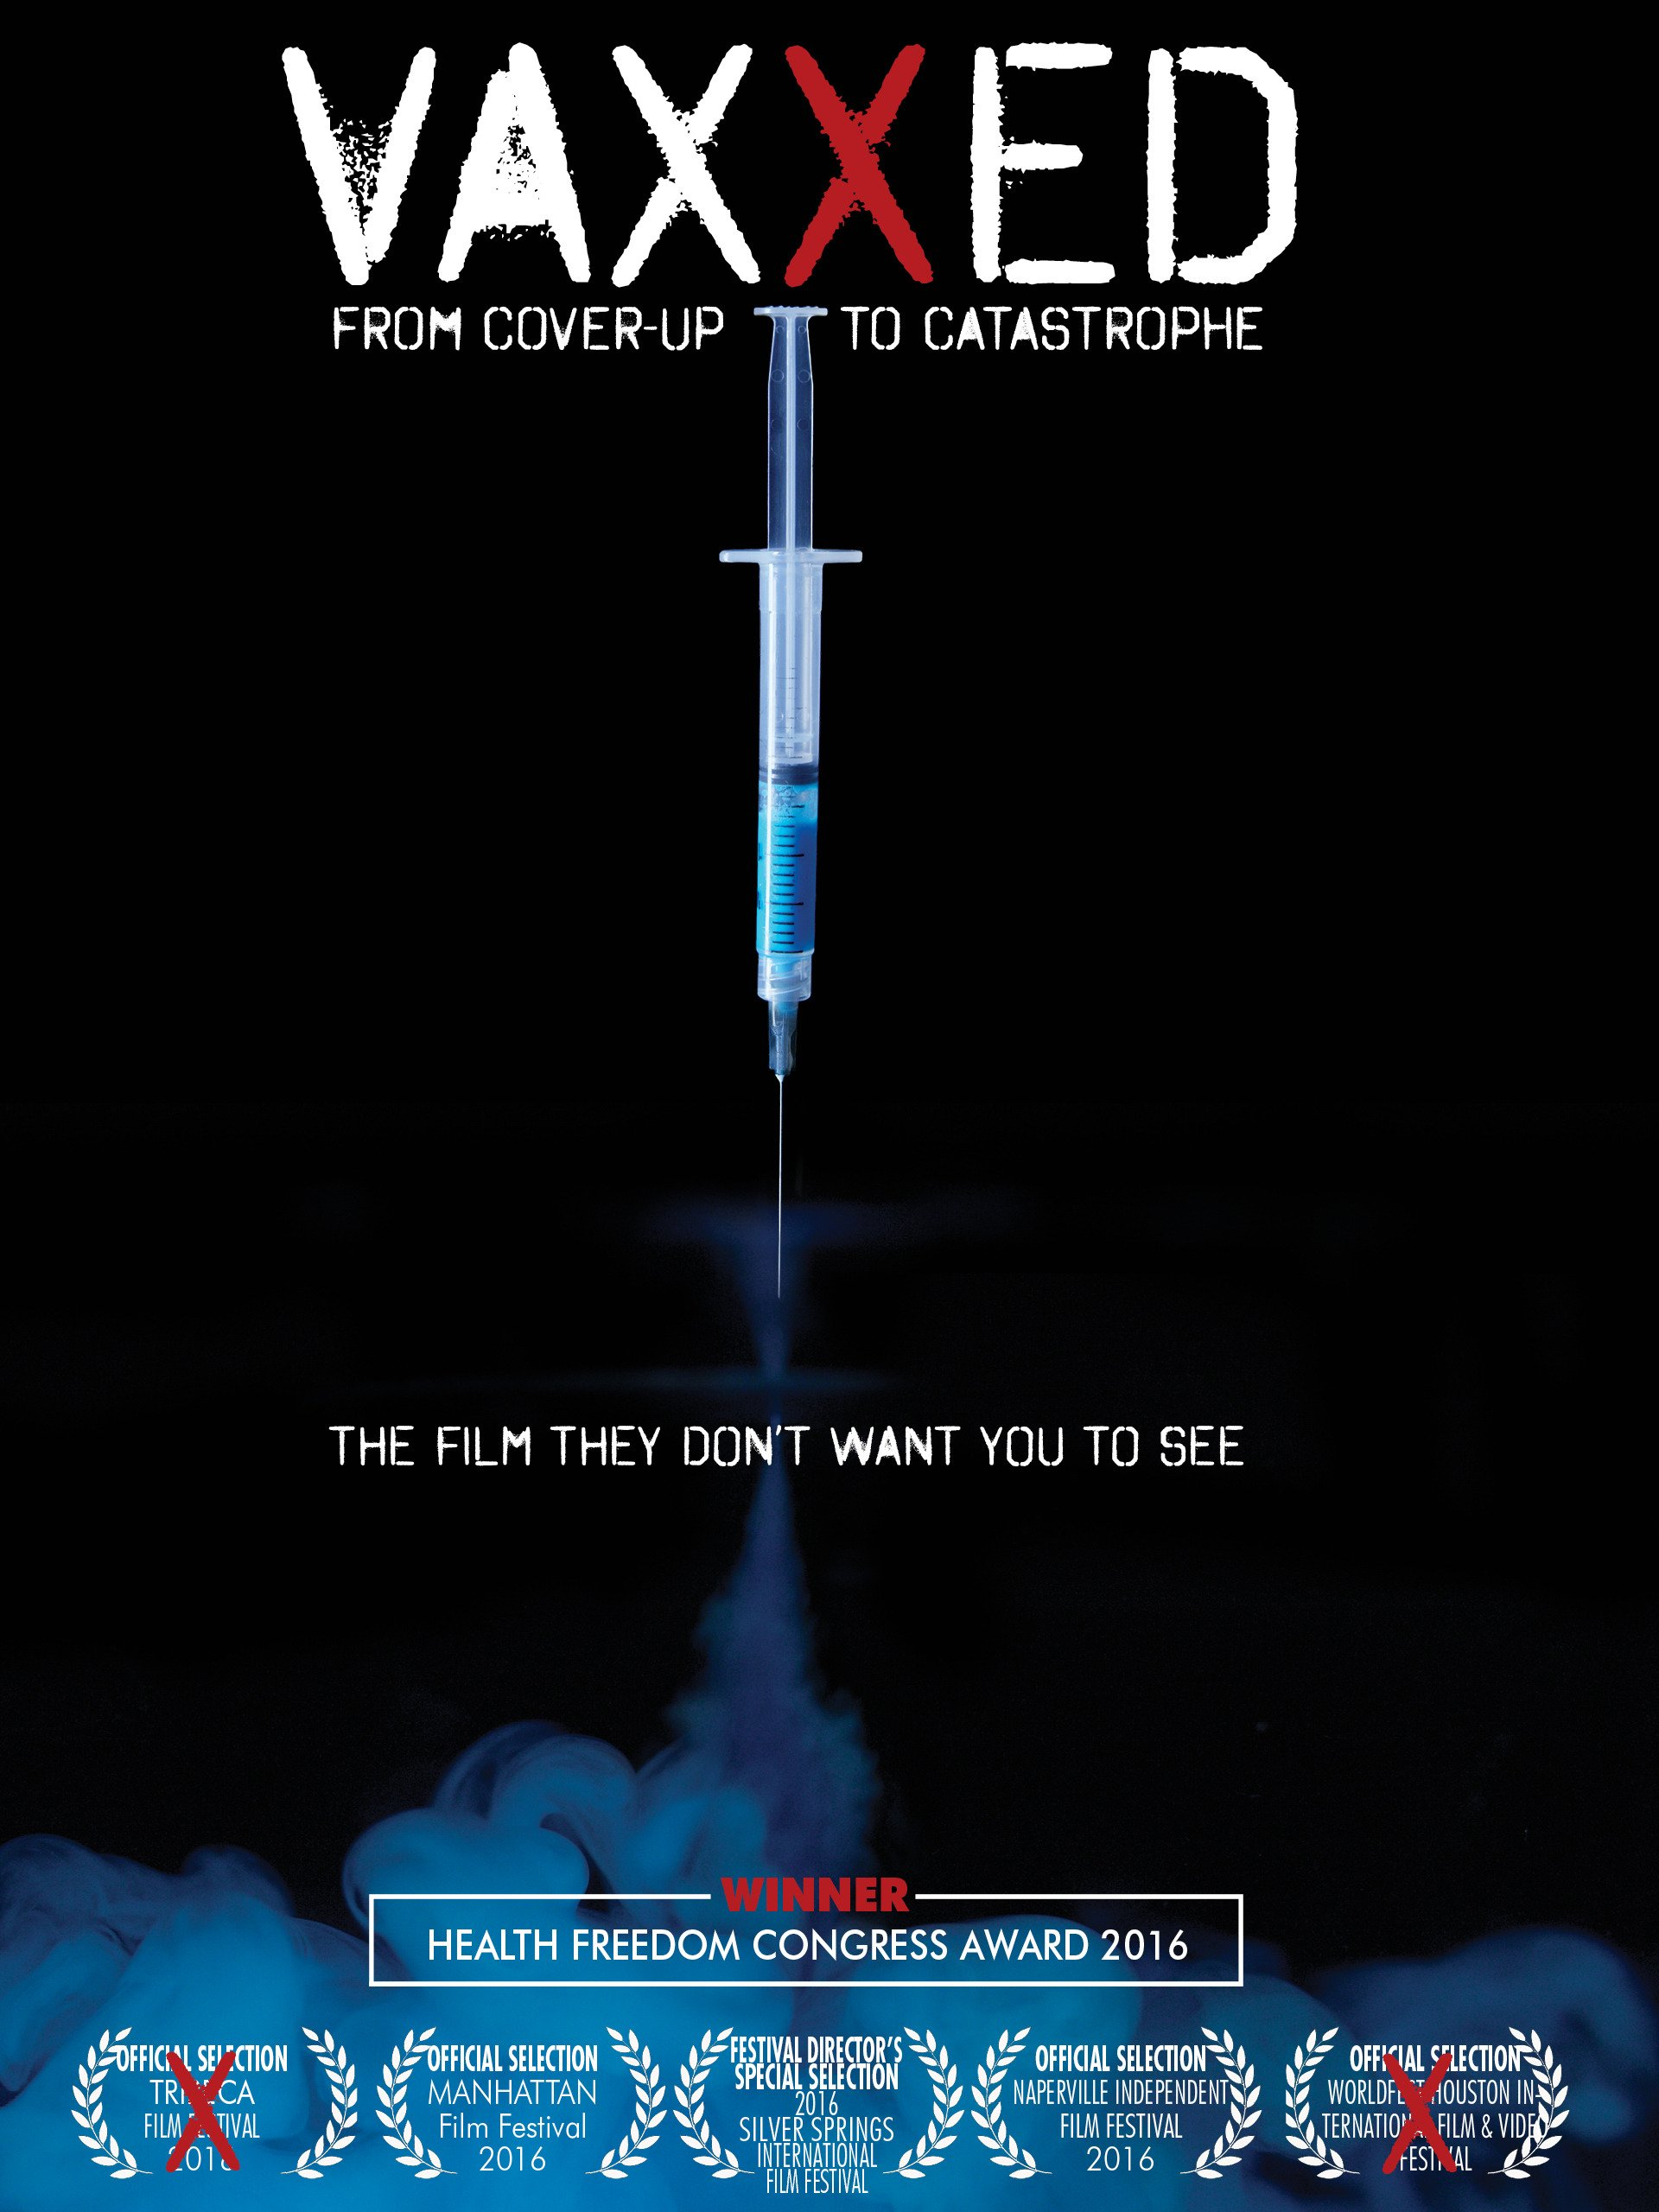 Amazon.com: Vaxxed: From Cover-Up to Catastrophe: Del Bigtree, Polly ...